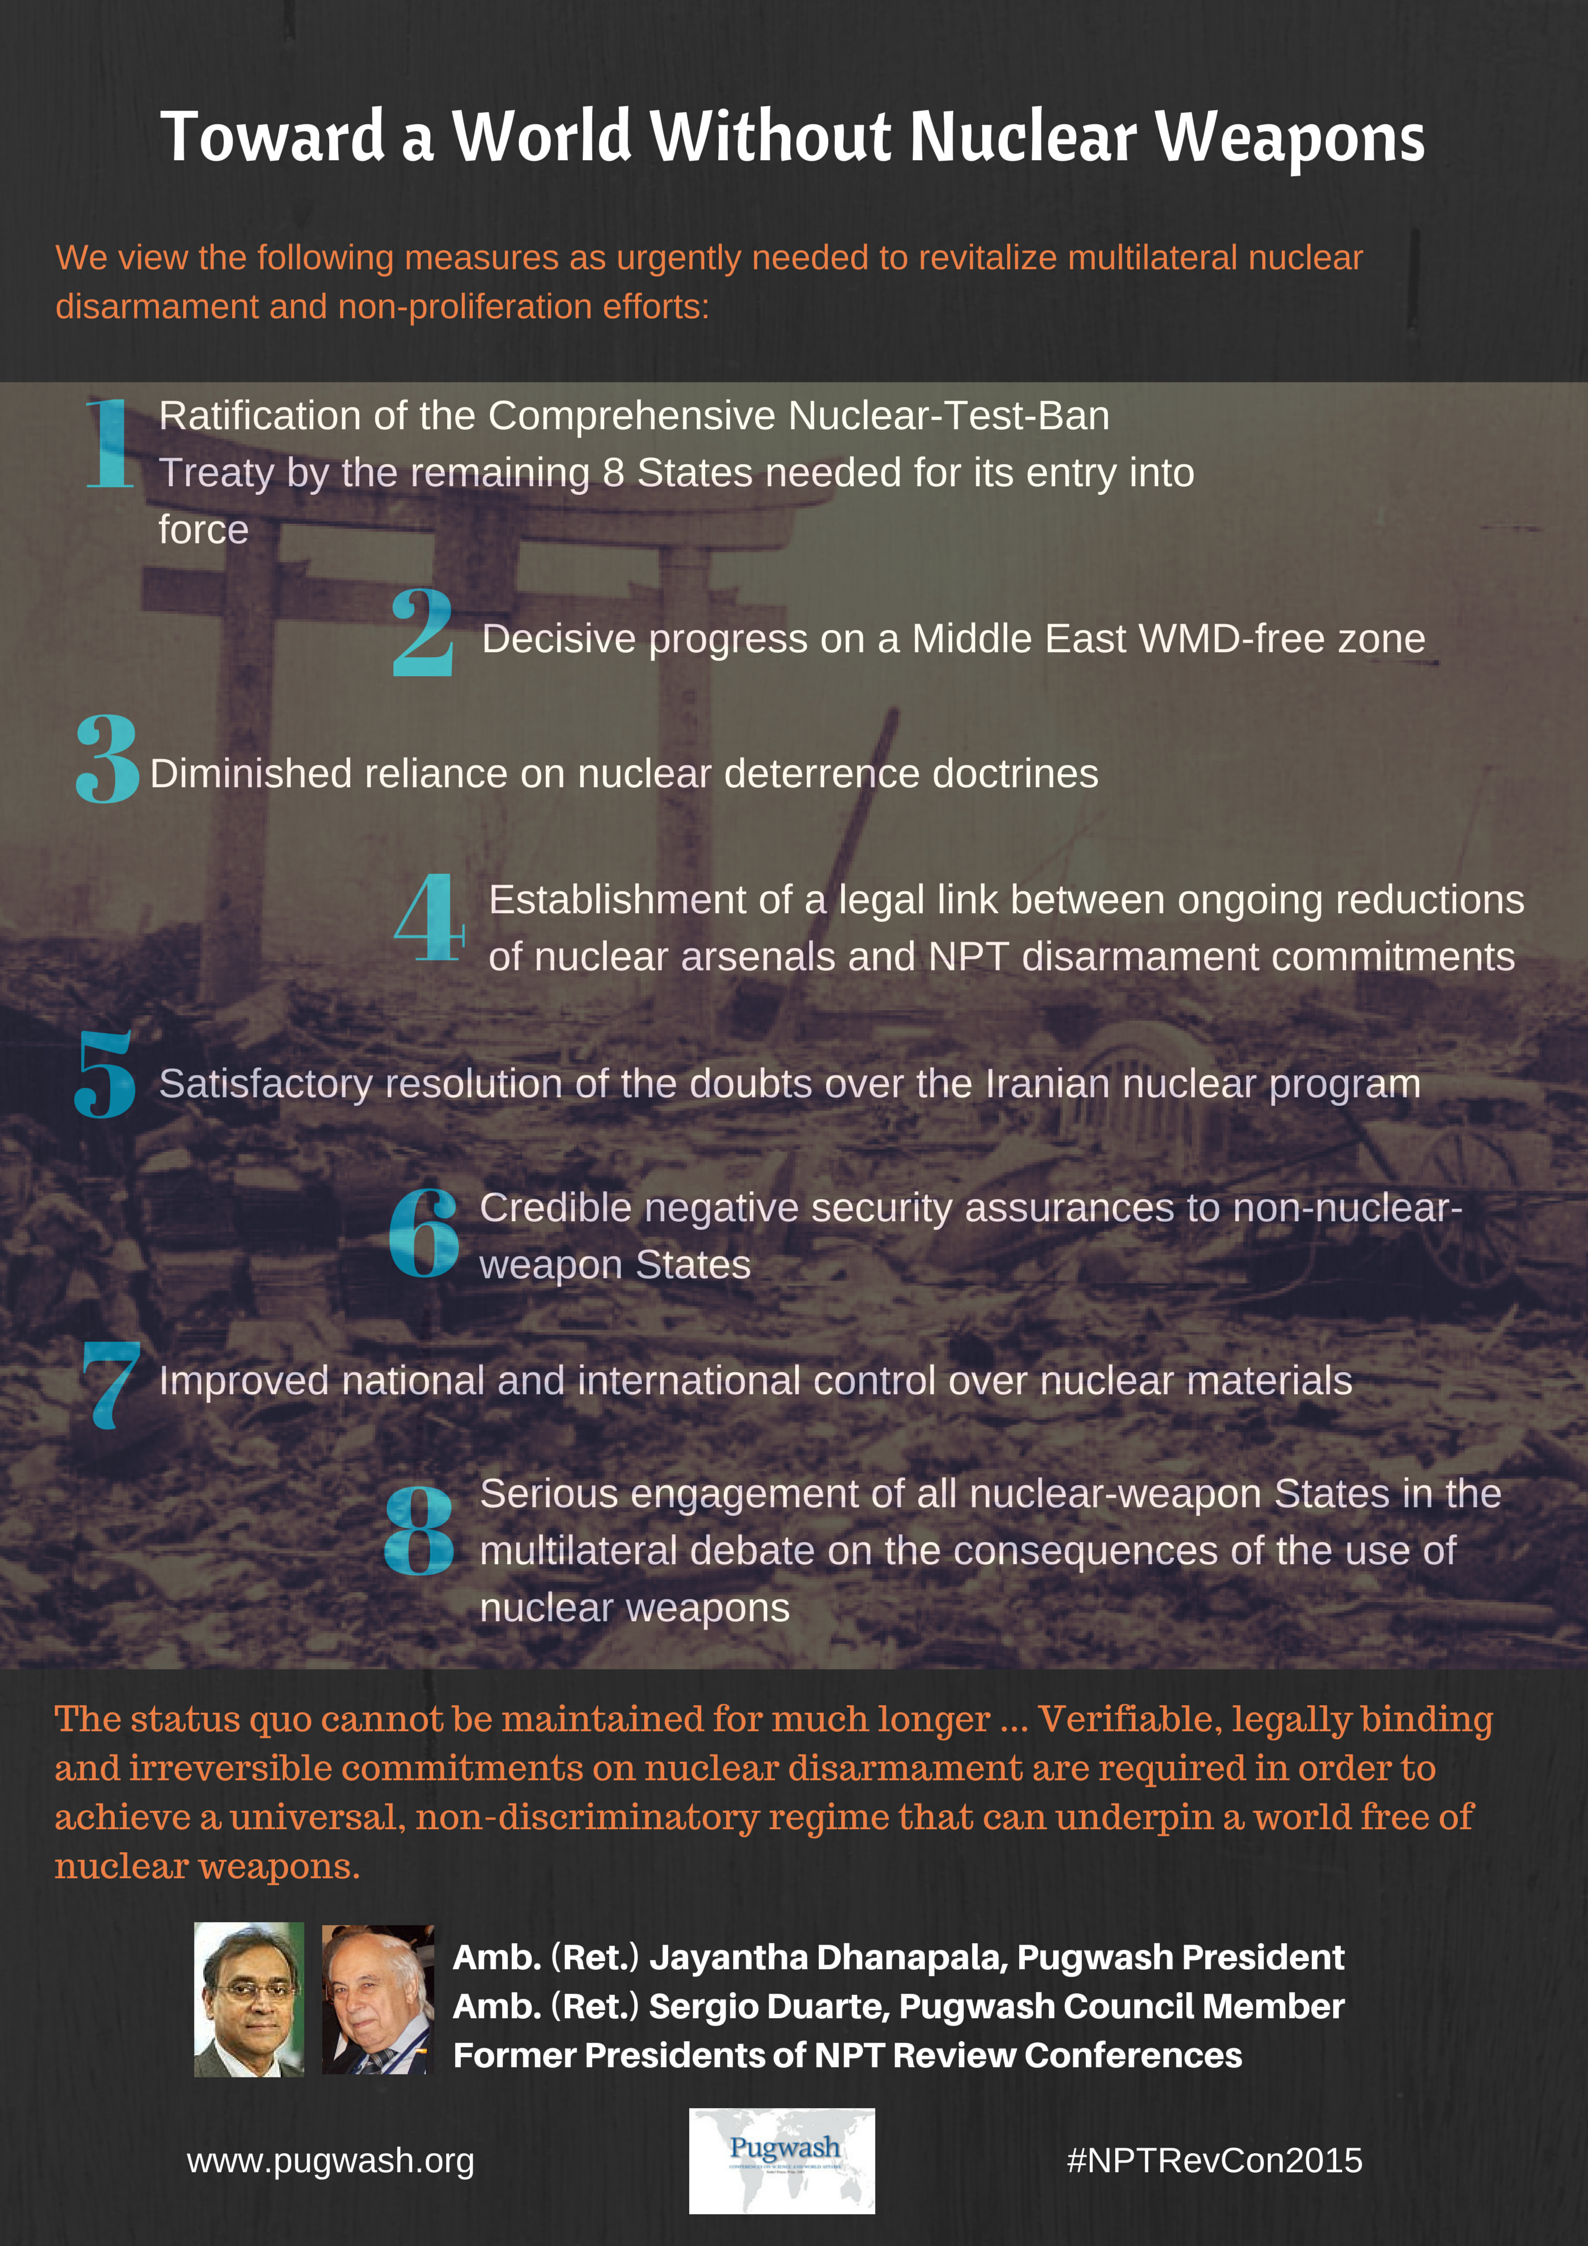 an argument in favor of ratifying the comprehensive nuclear test ban treaty Remarks on the comprehensive nuclear-test-ban treaty message of not ratifying this treaty is our effort to reduce the nuclear threat the argument.